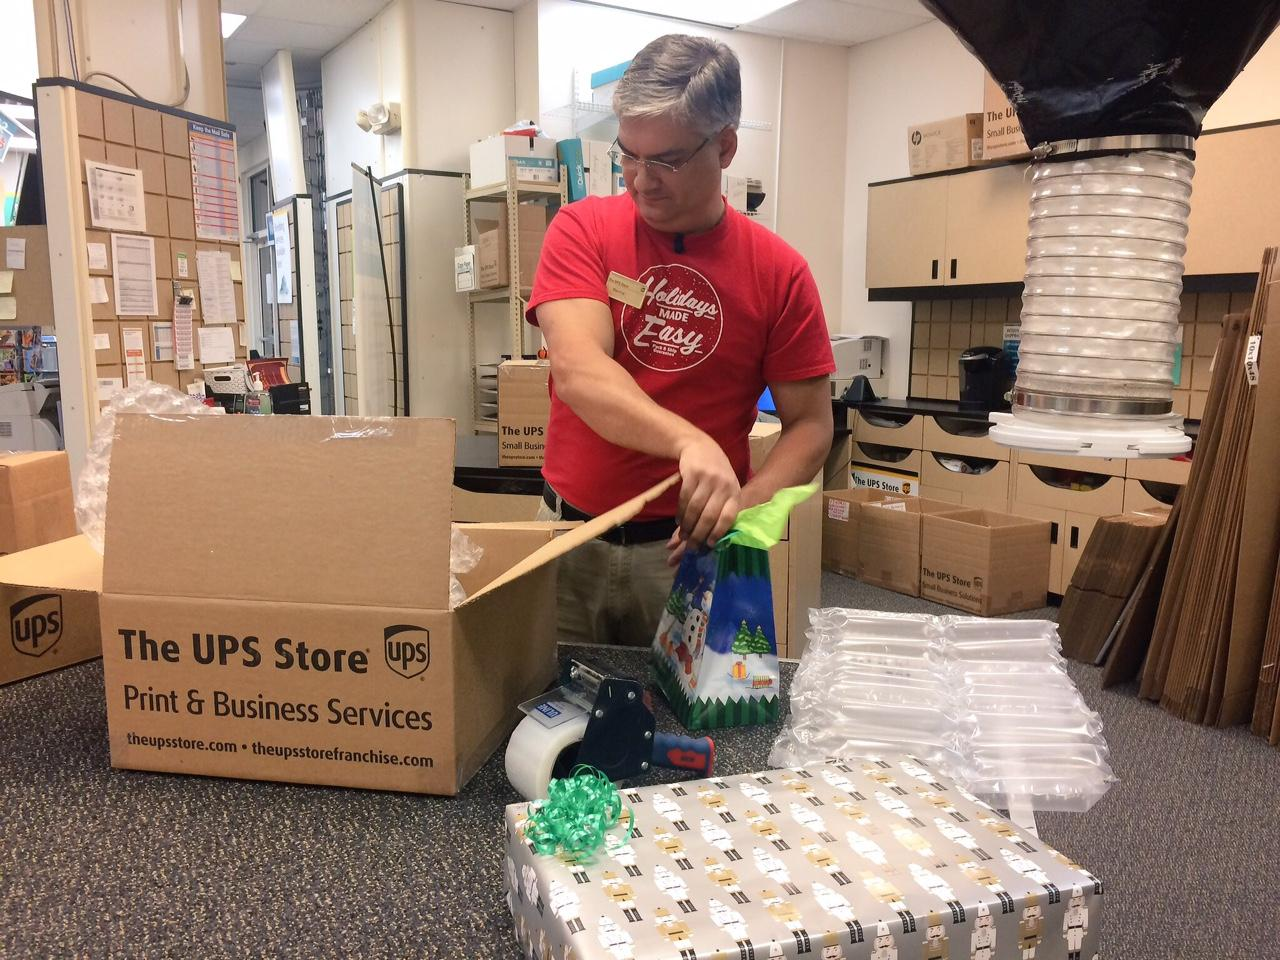 If you are shipping via UPS, you must send your packages by December 21st for them to arrive by Christmas. UPS delivery drivers will be working through Saturday, December 23rd to ensure packages arrive on time. (Photo Credit: WLOS Staff).{ }